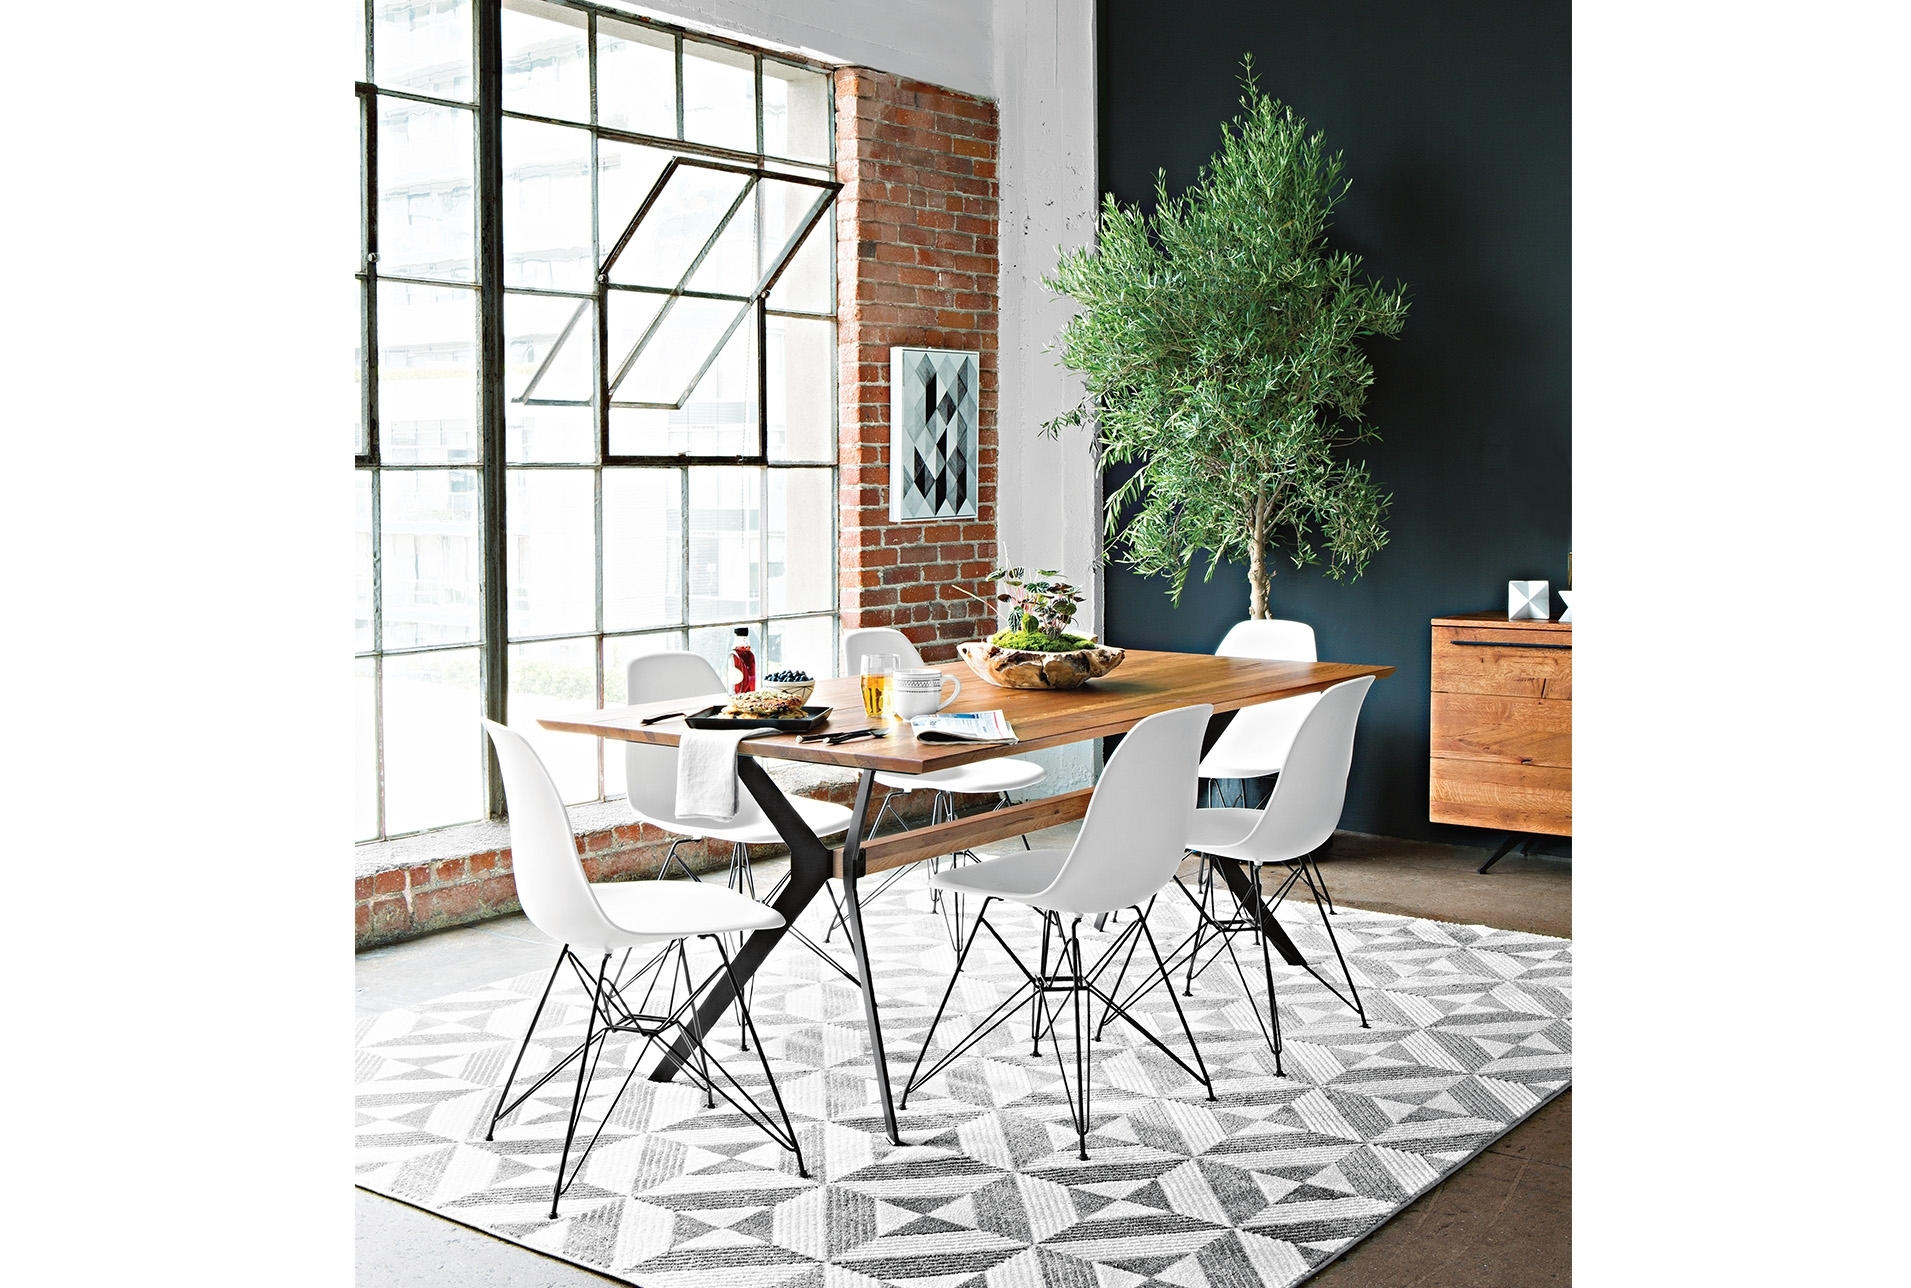 Weaver Dining Table | Furniture Ideas, Apartments And Interiors Regarding Most Up To Date Weaver Ii Dining Tables (View 3 of 20)